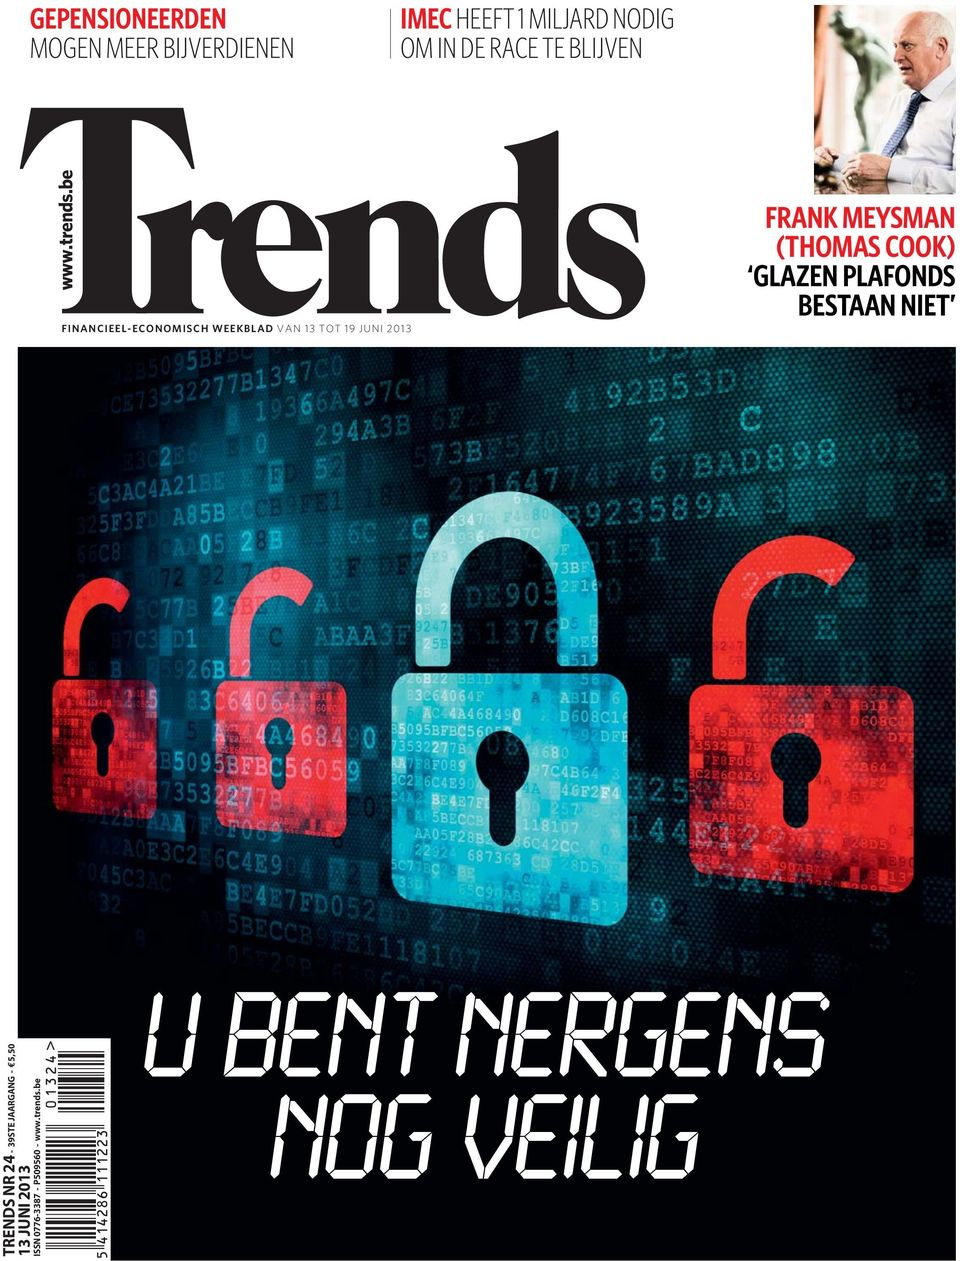 be FINANCIEEL-ECONOMISCH WEEKBLAD VAN 13 TOT 19 JUNI 2013 FRANK MEYSMAN (THOMAS